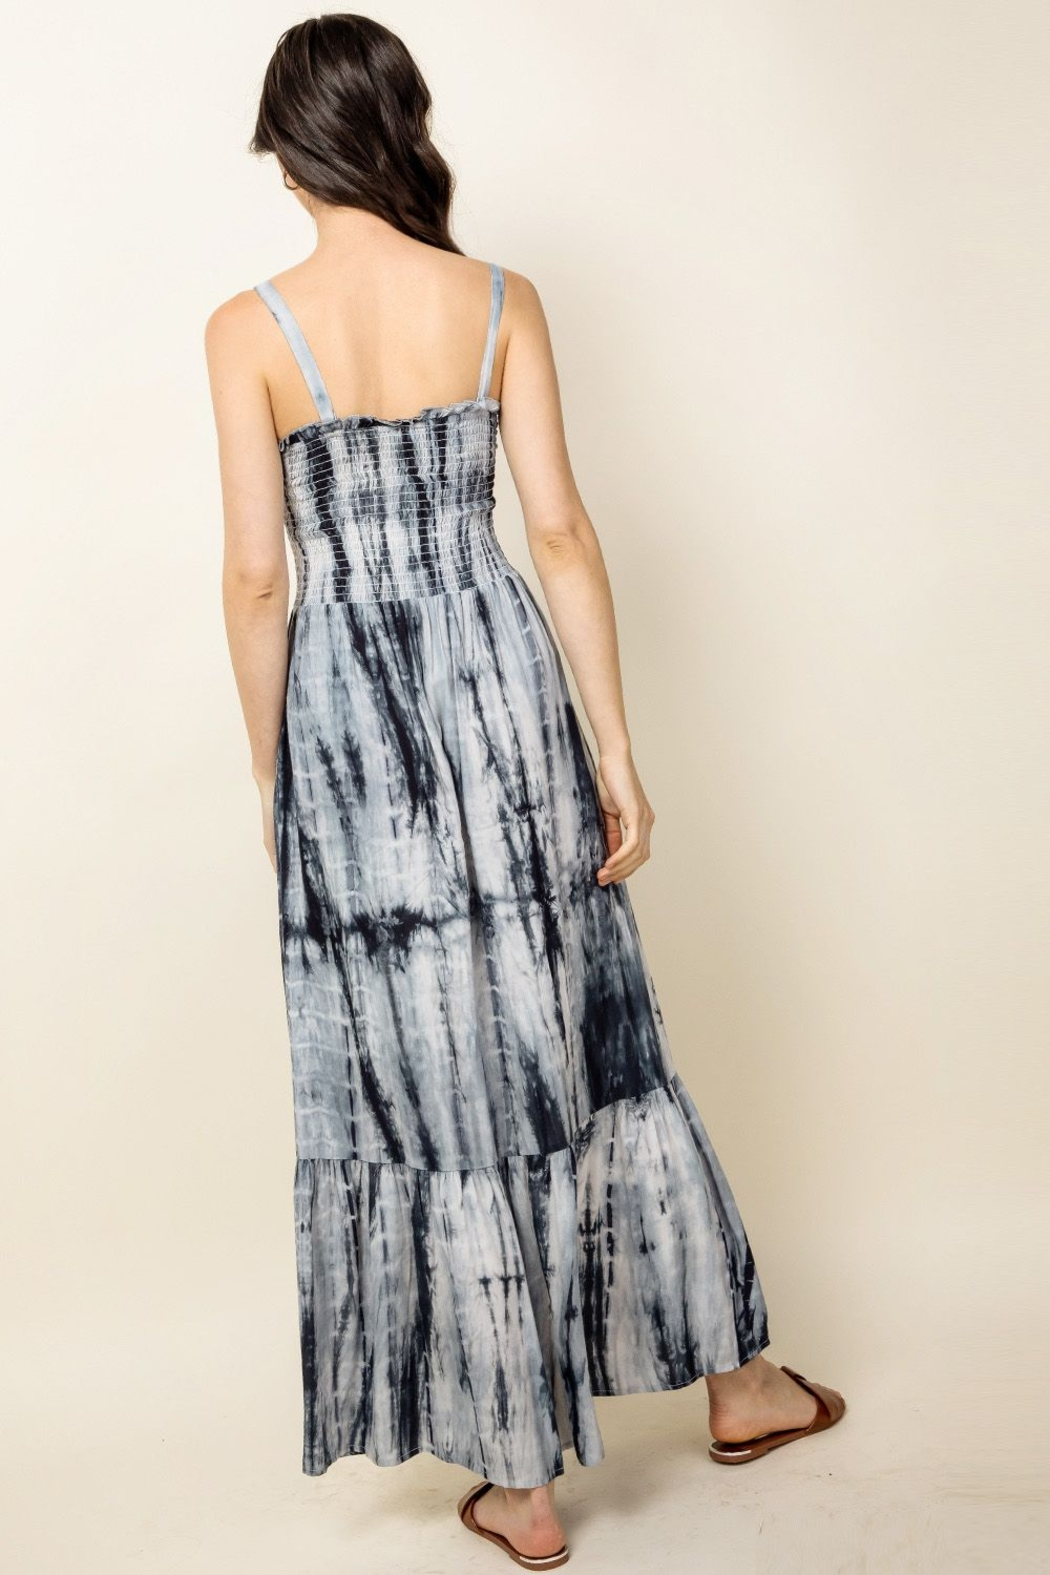 Thml TIE-DYED MAXI DRESS - Side Cropped Image